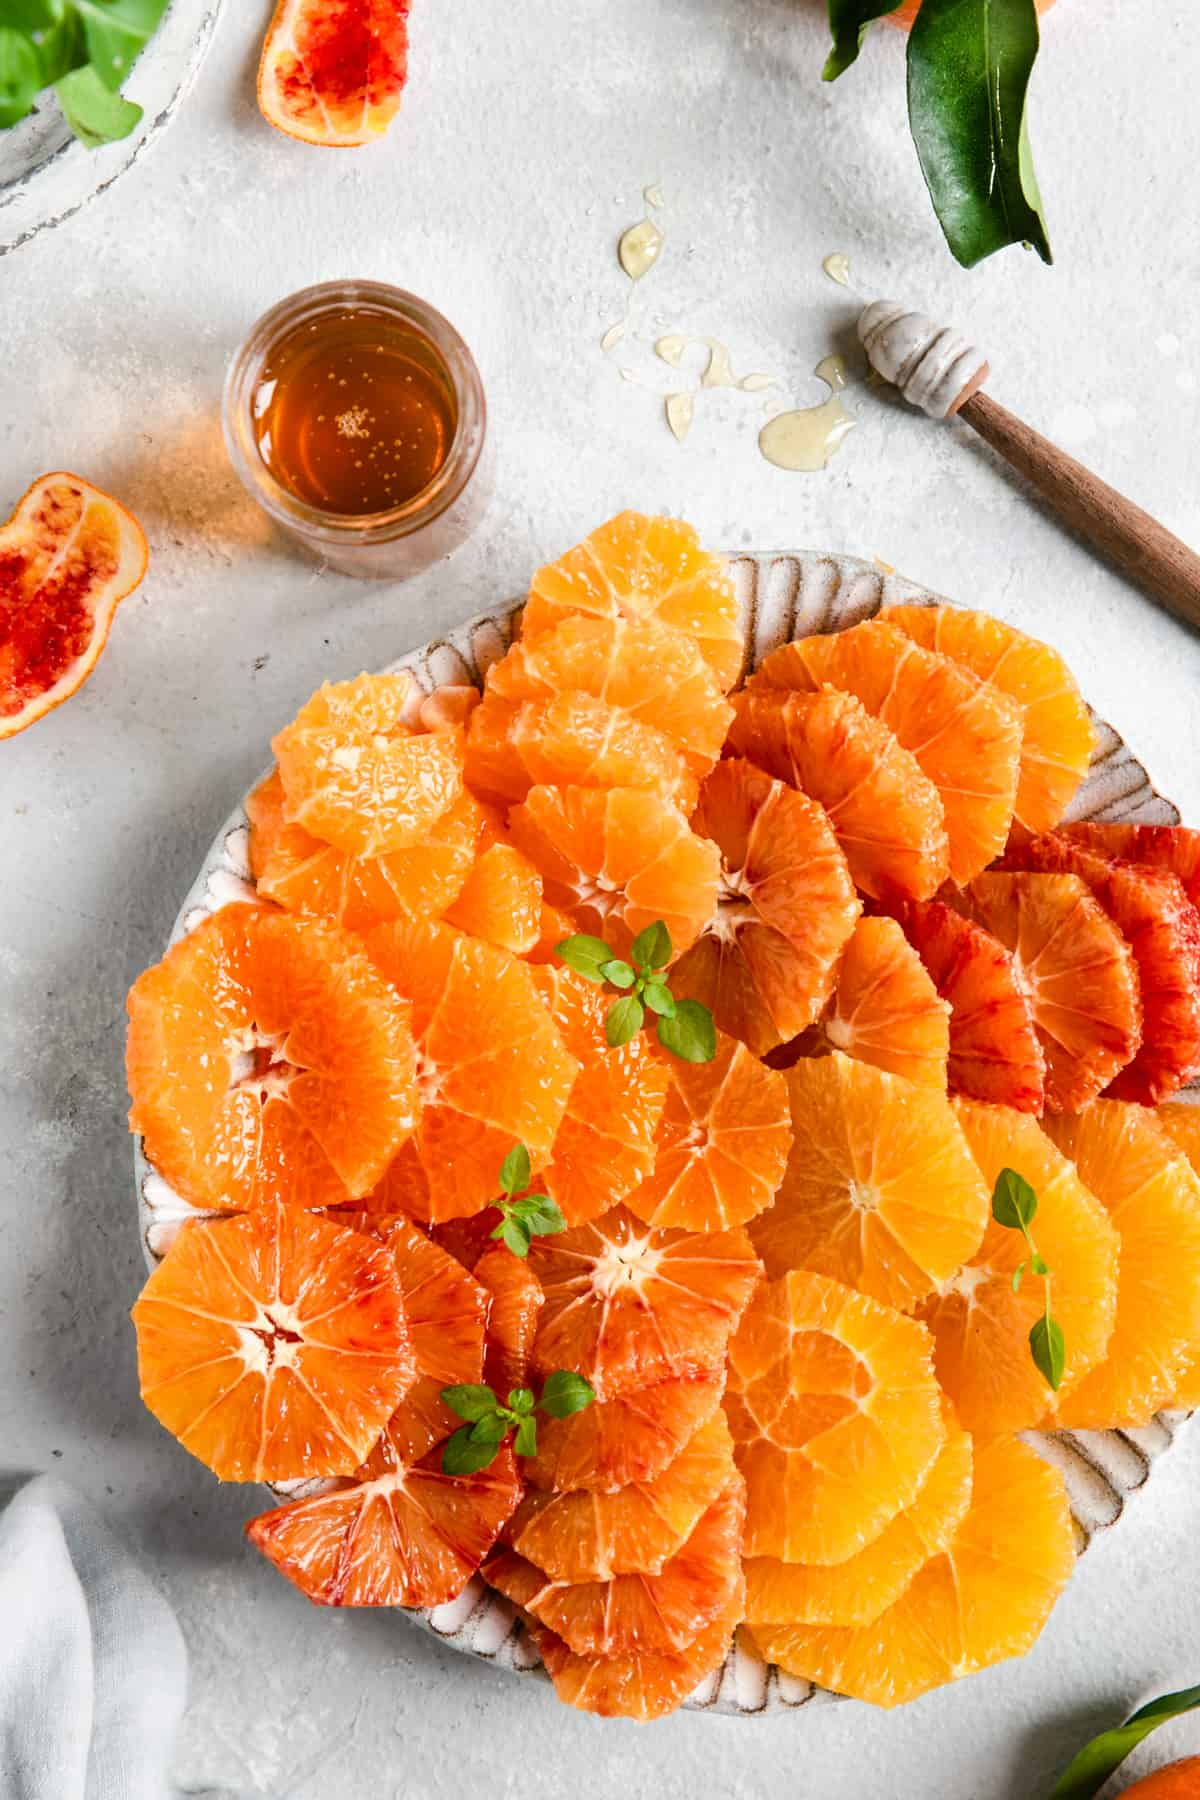 plate full of sliced citrus and small jar of honey on side